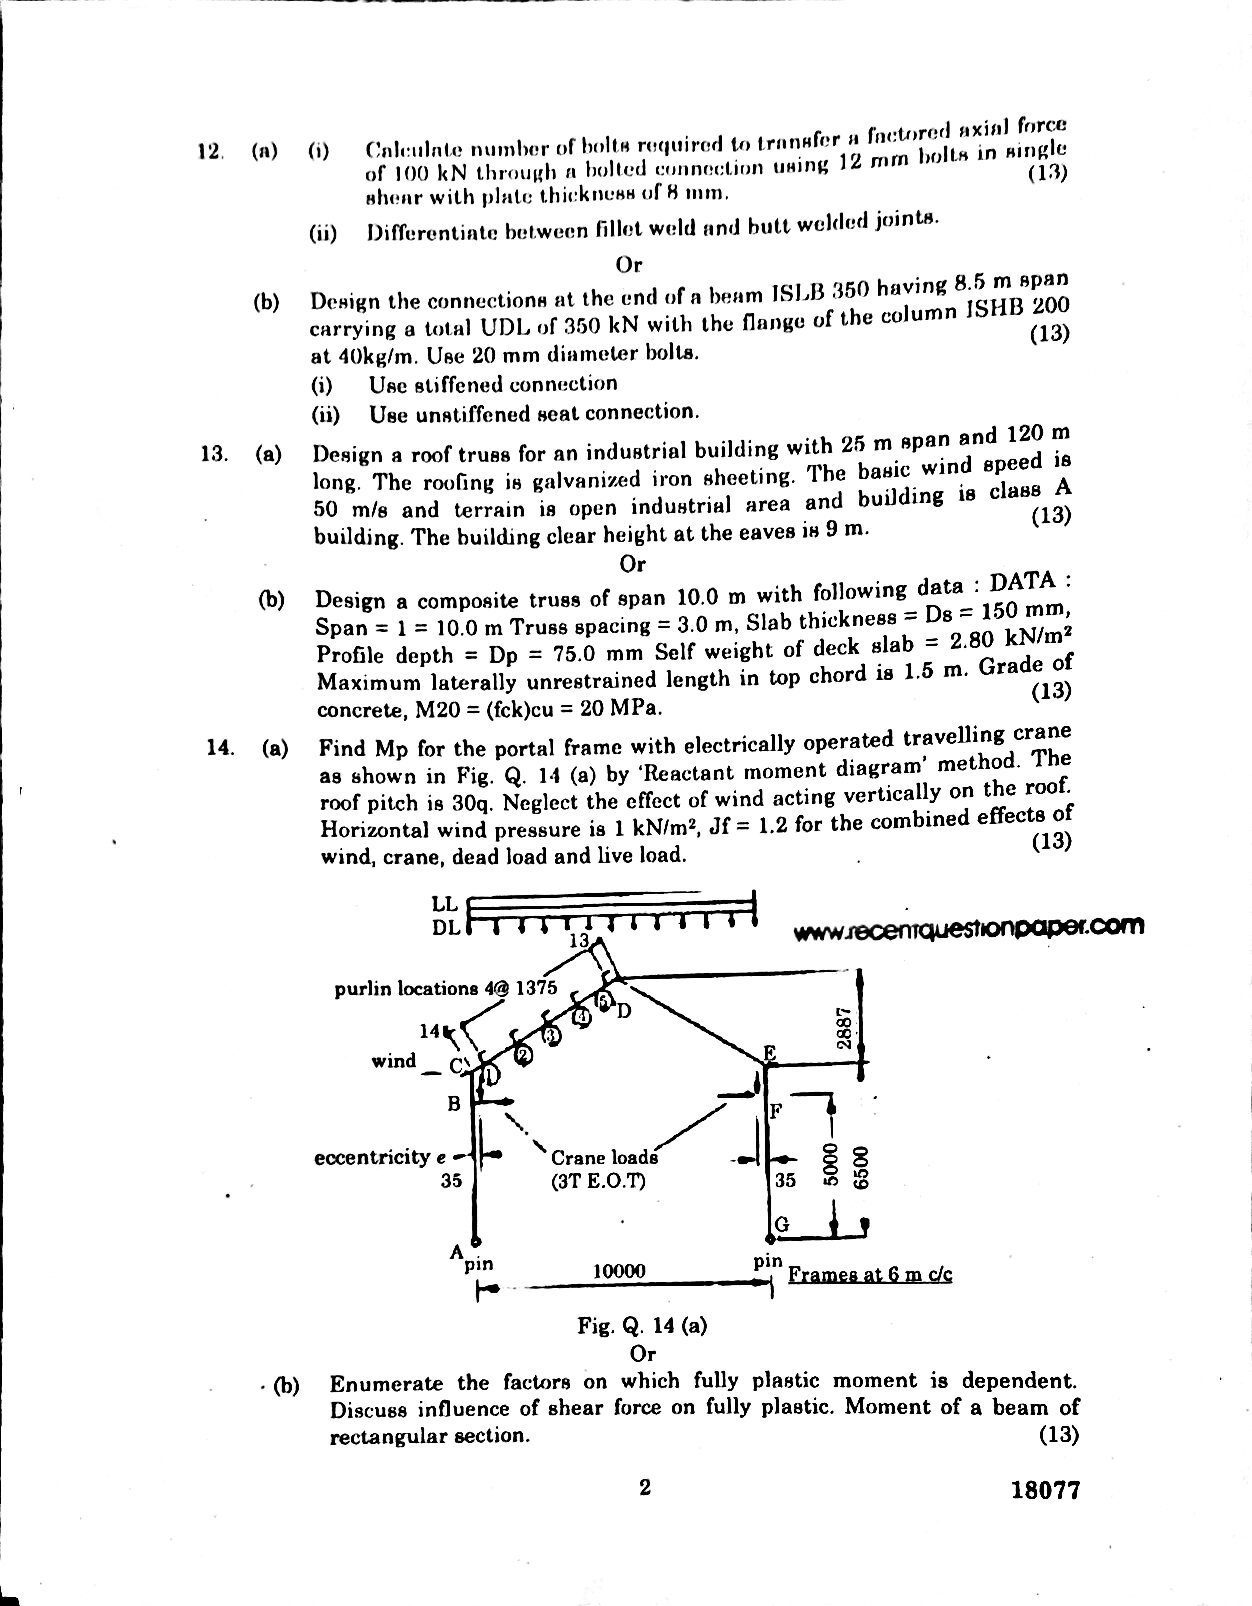 Steel Structures Anna University Question paper